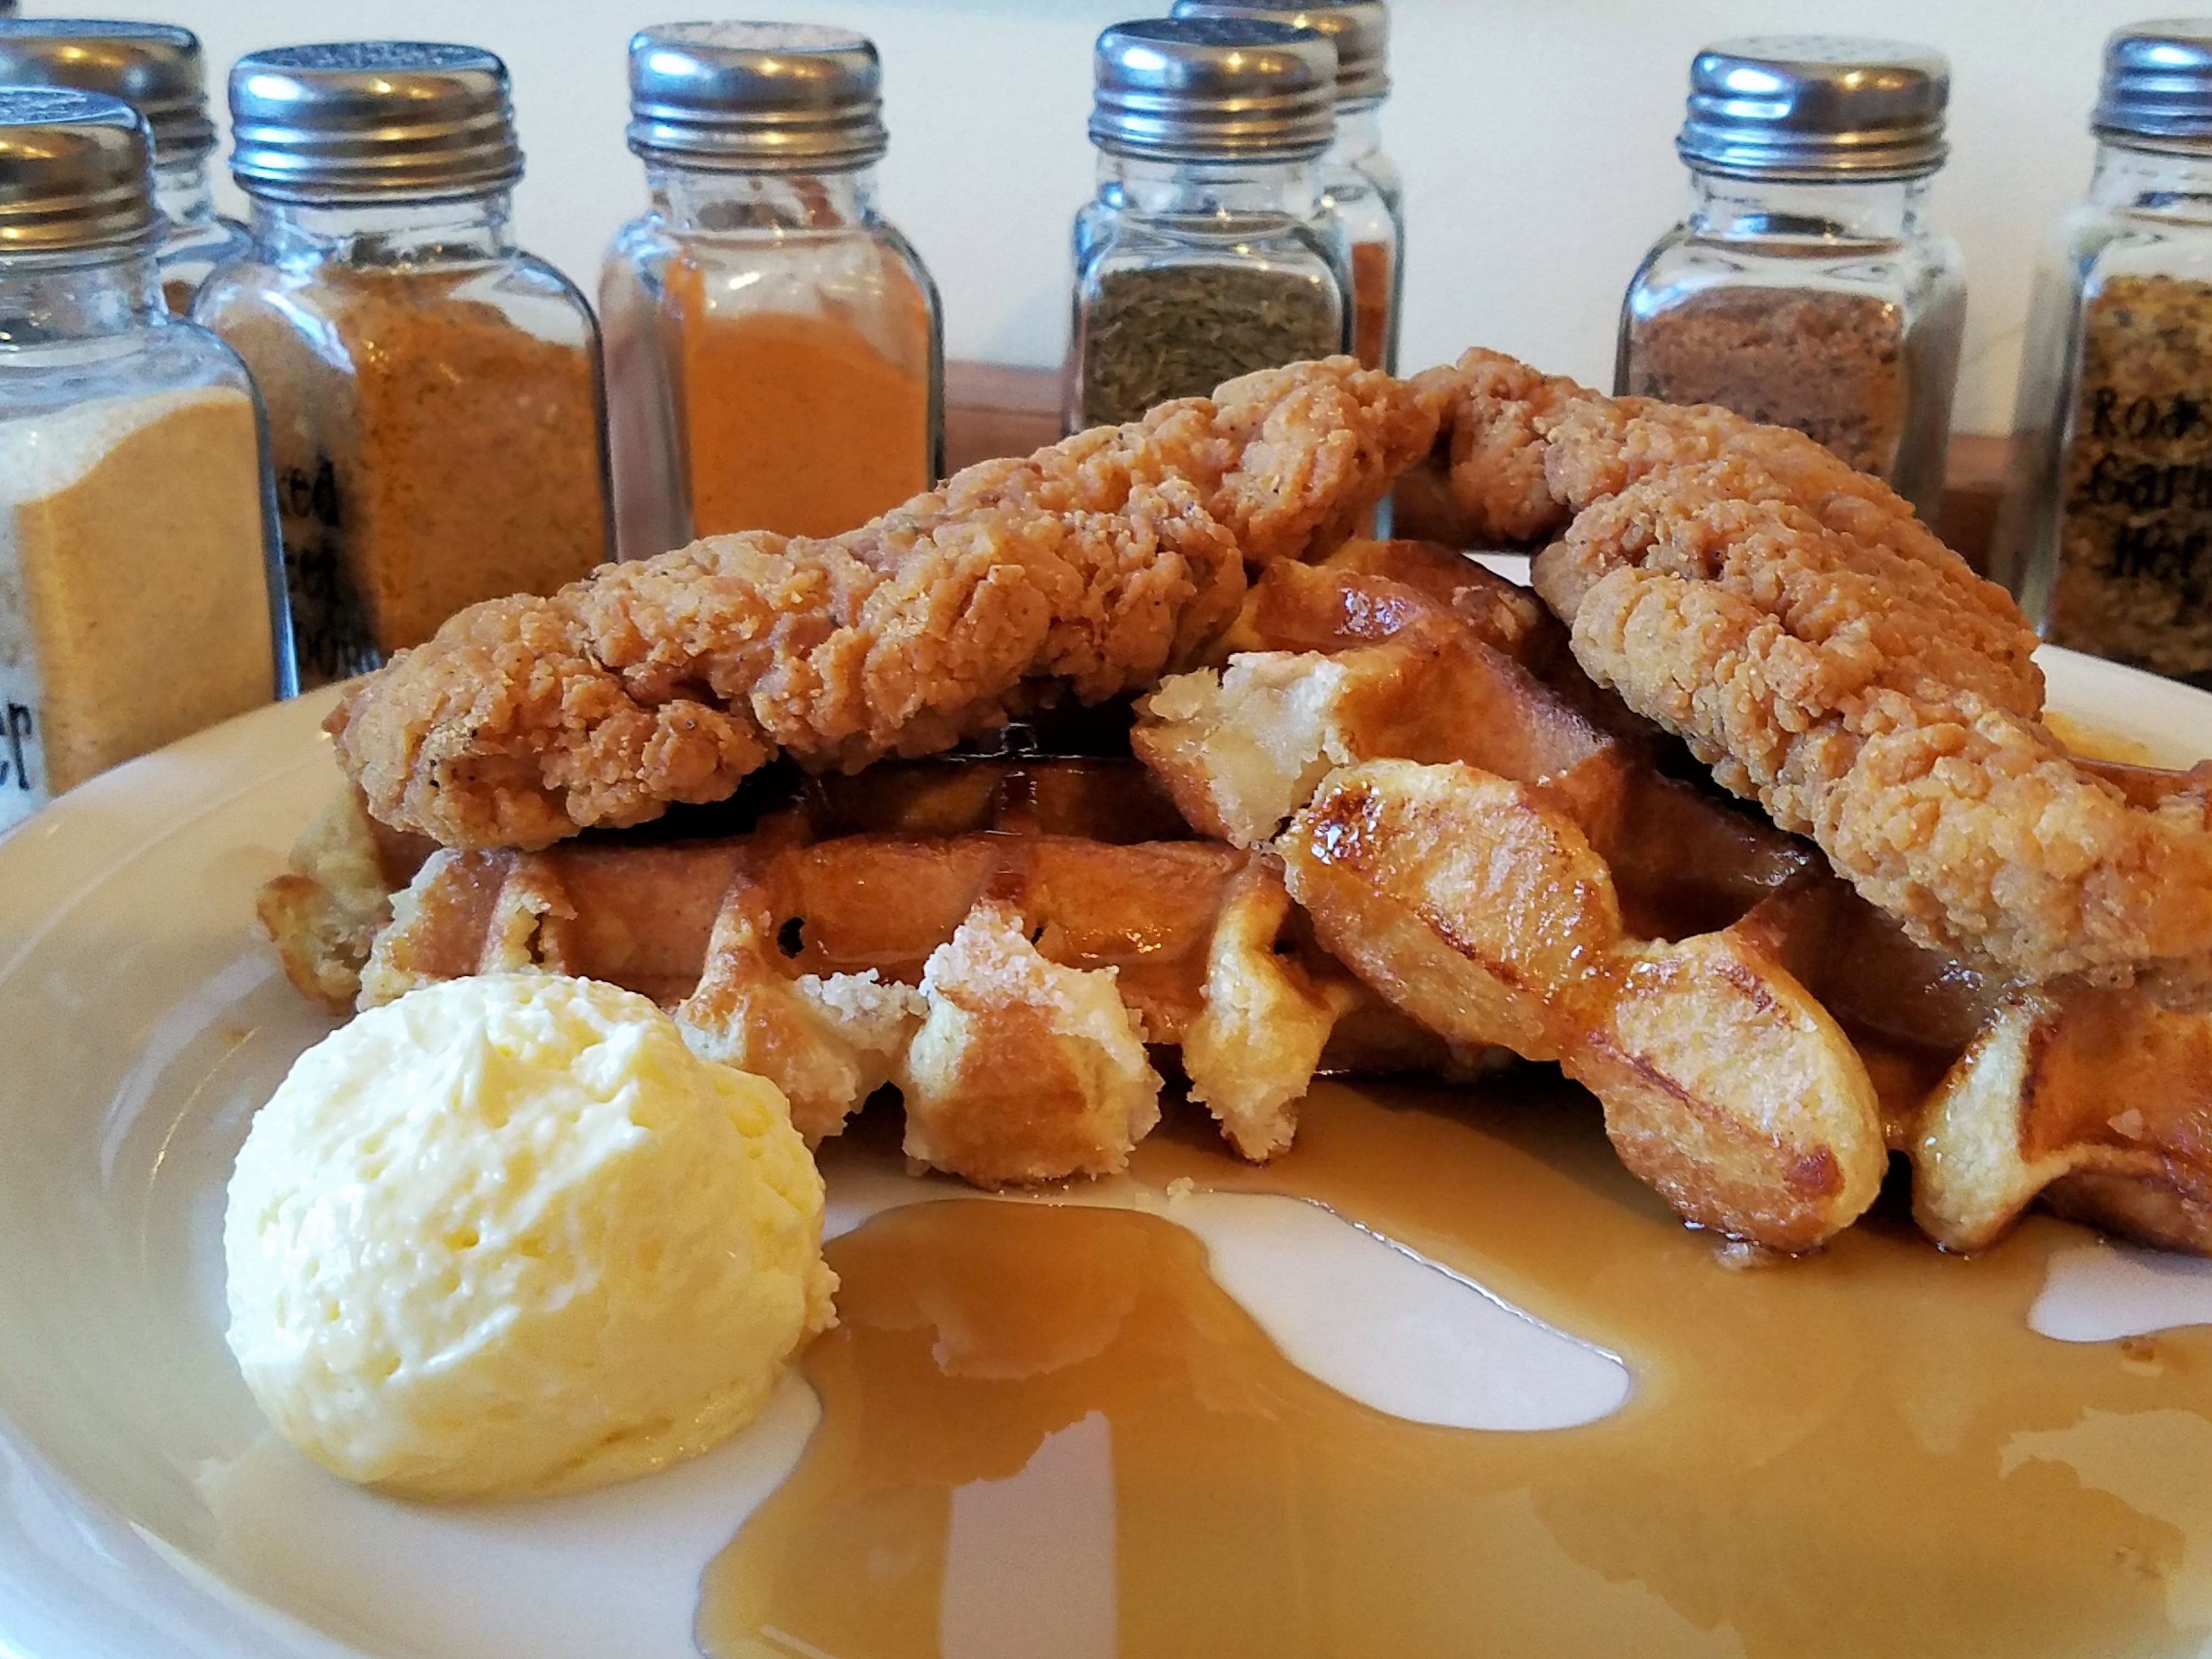 Chicken and waffles at Hawg N Sauce Saturday brunch.